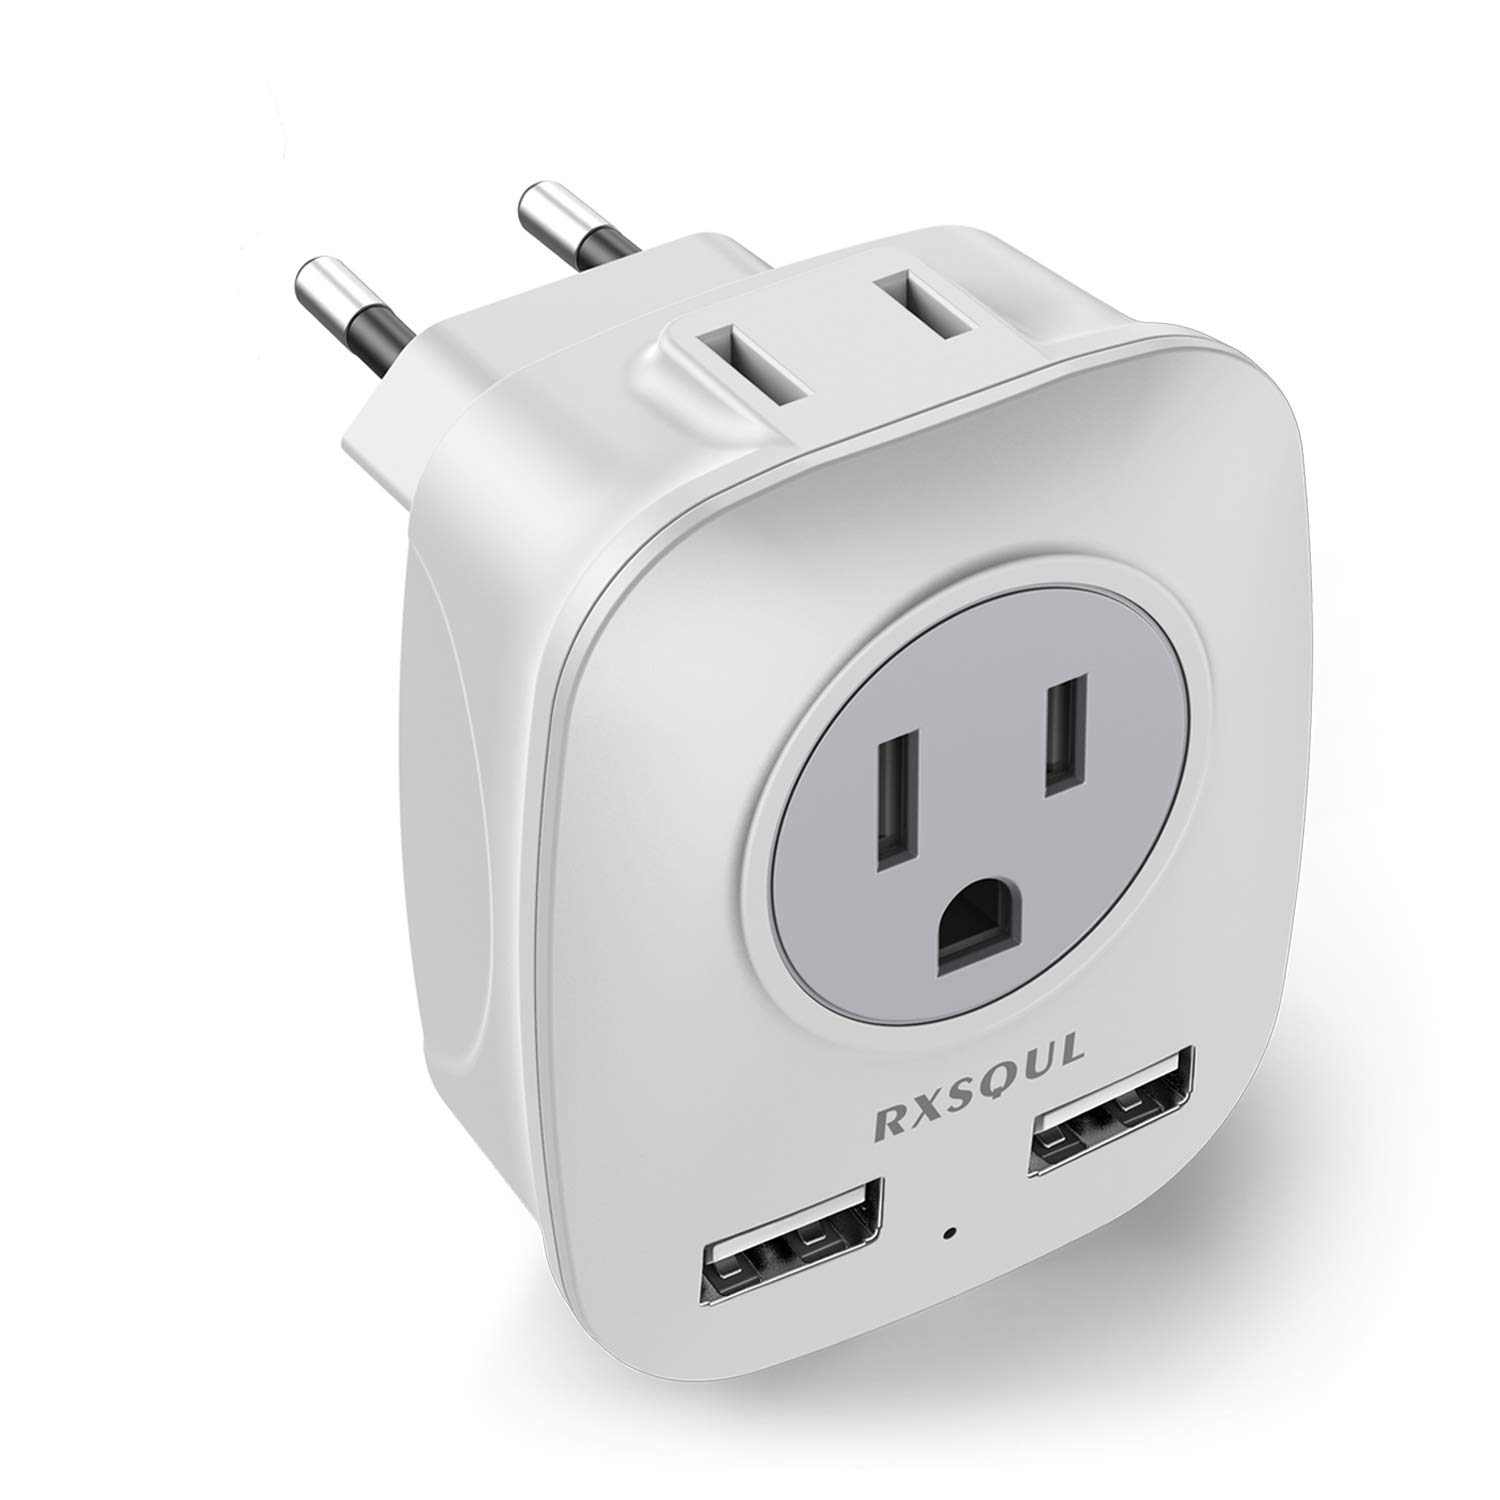 RXSQUL European Travel Plug Adapter, Universal International Power Travel Plug Adapter Converter with 2 USB Wall Charger, 2 x 15A Outlet Adapters for US to Europe EU Italy Spain Iceland-(White+Gray)